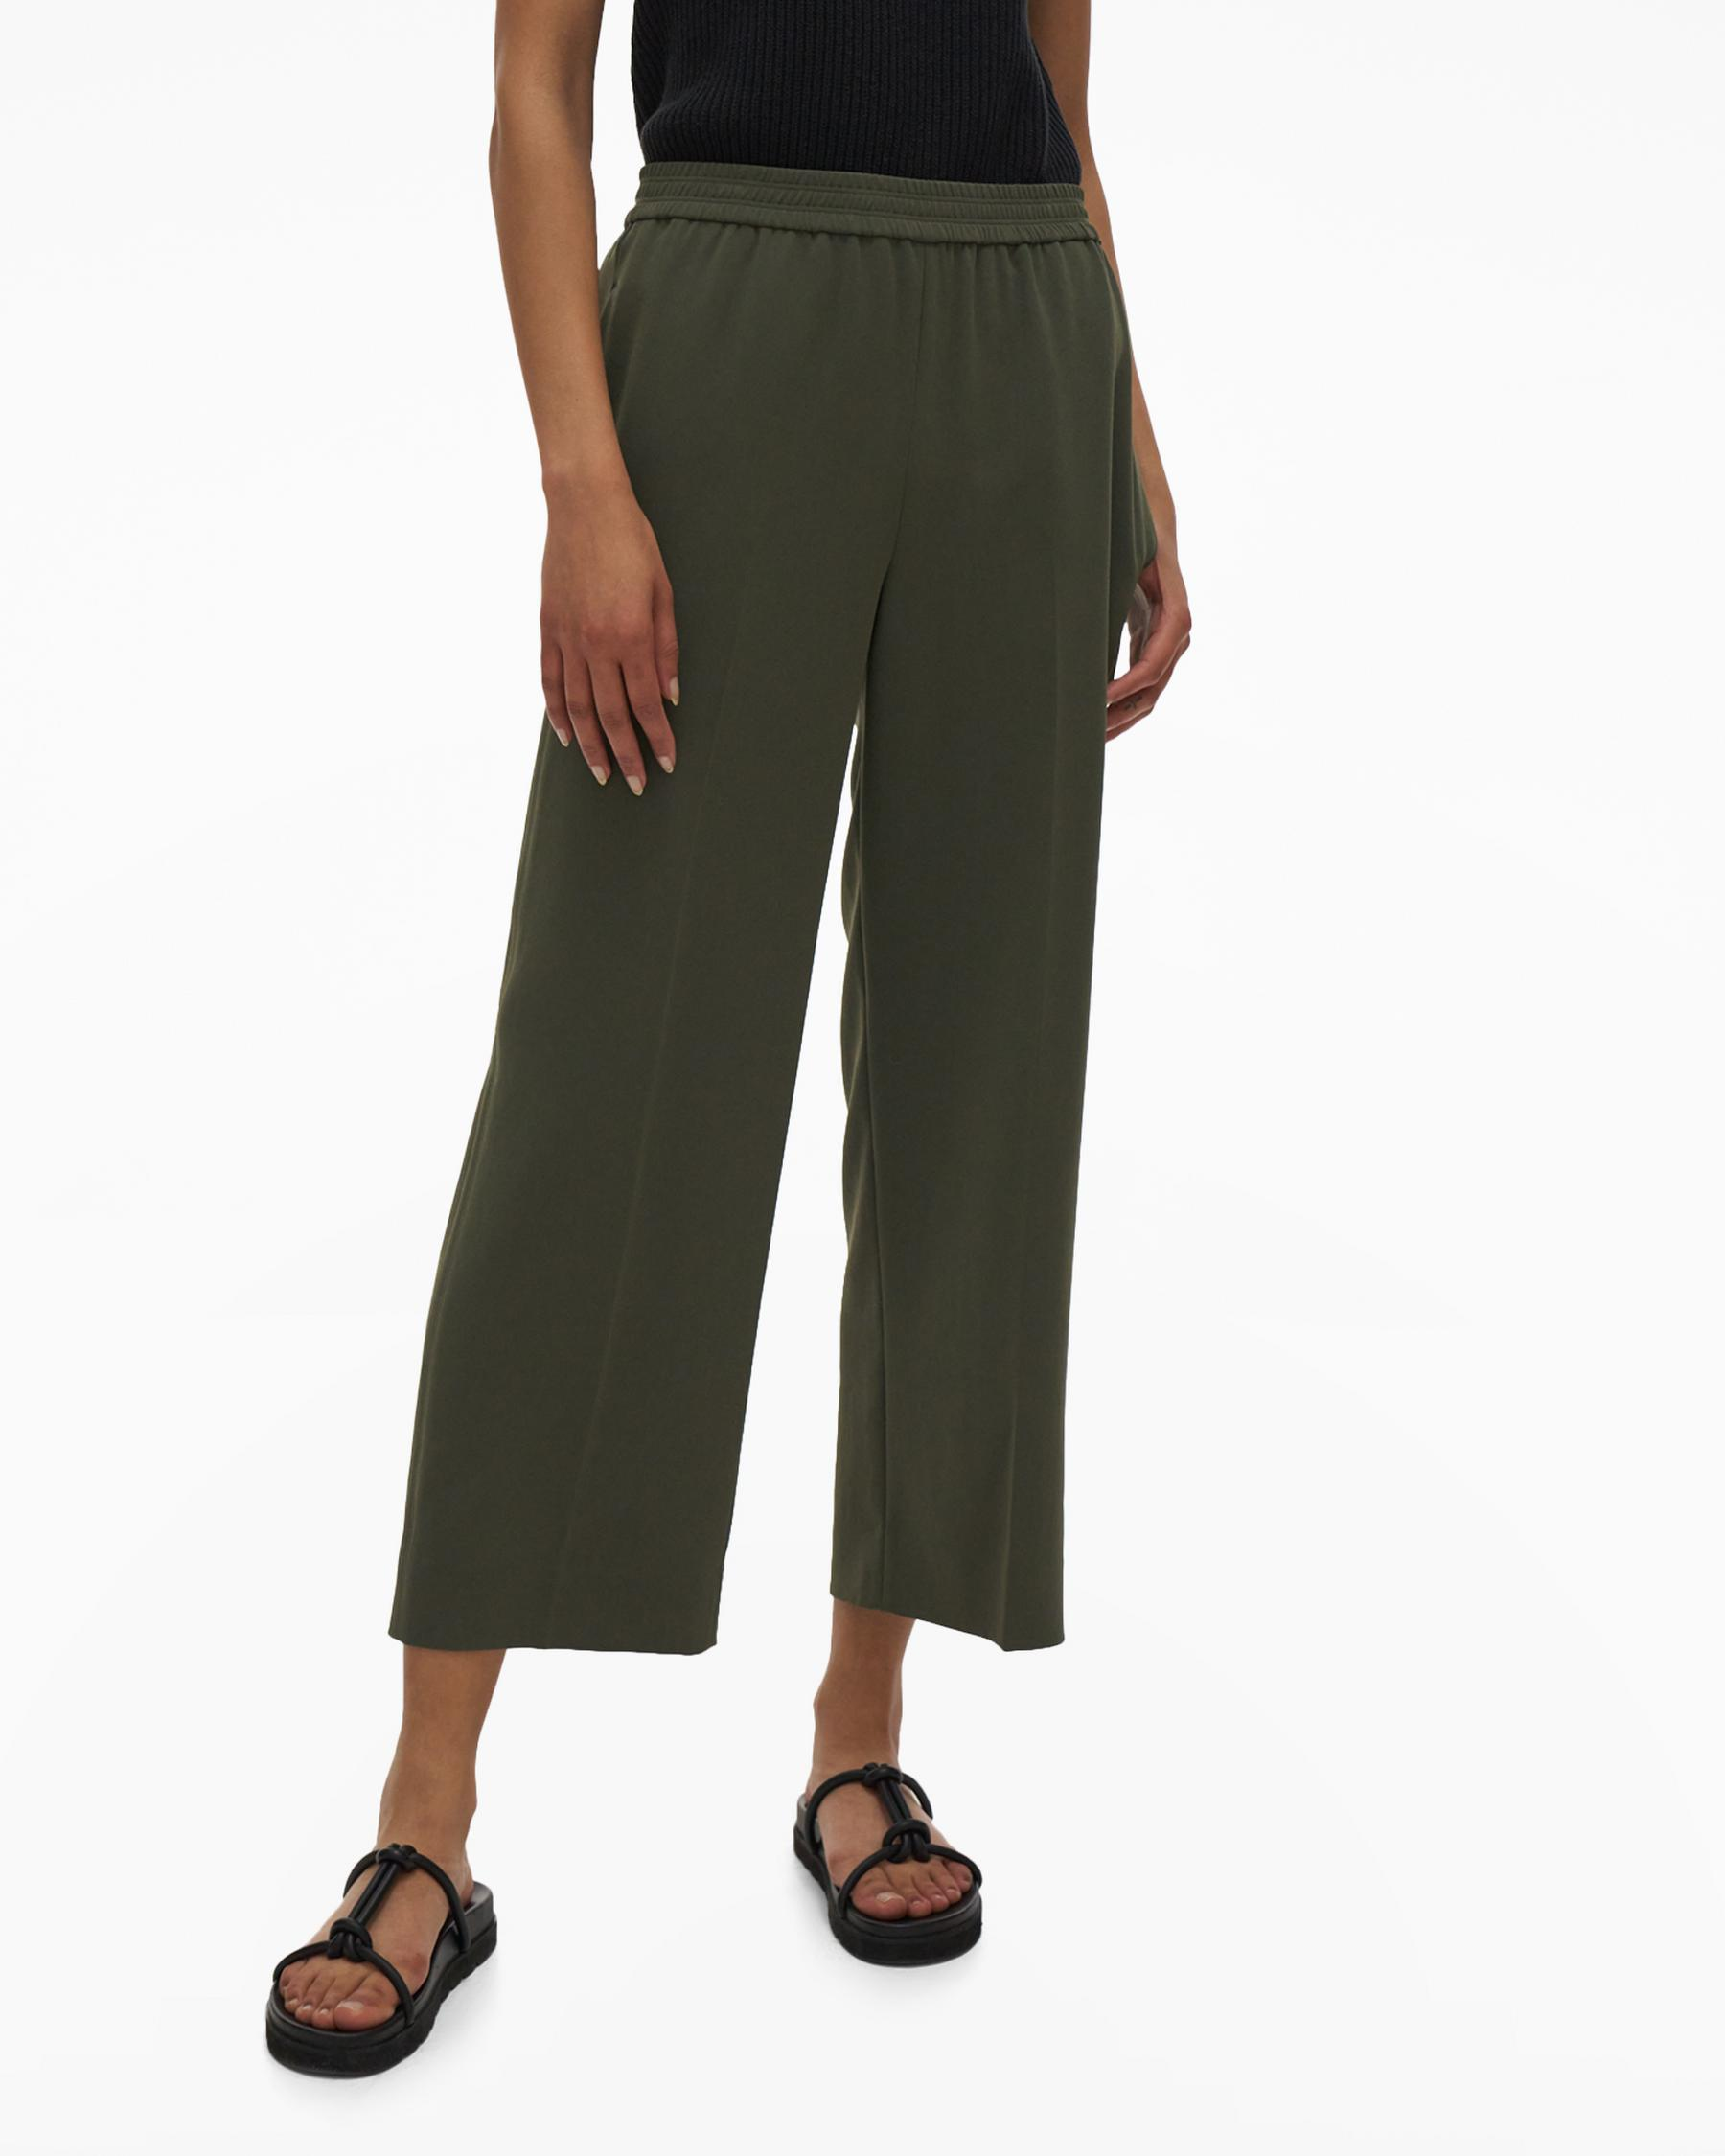 STRETCH PULL-ON PANT 1